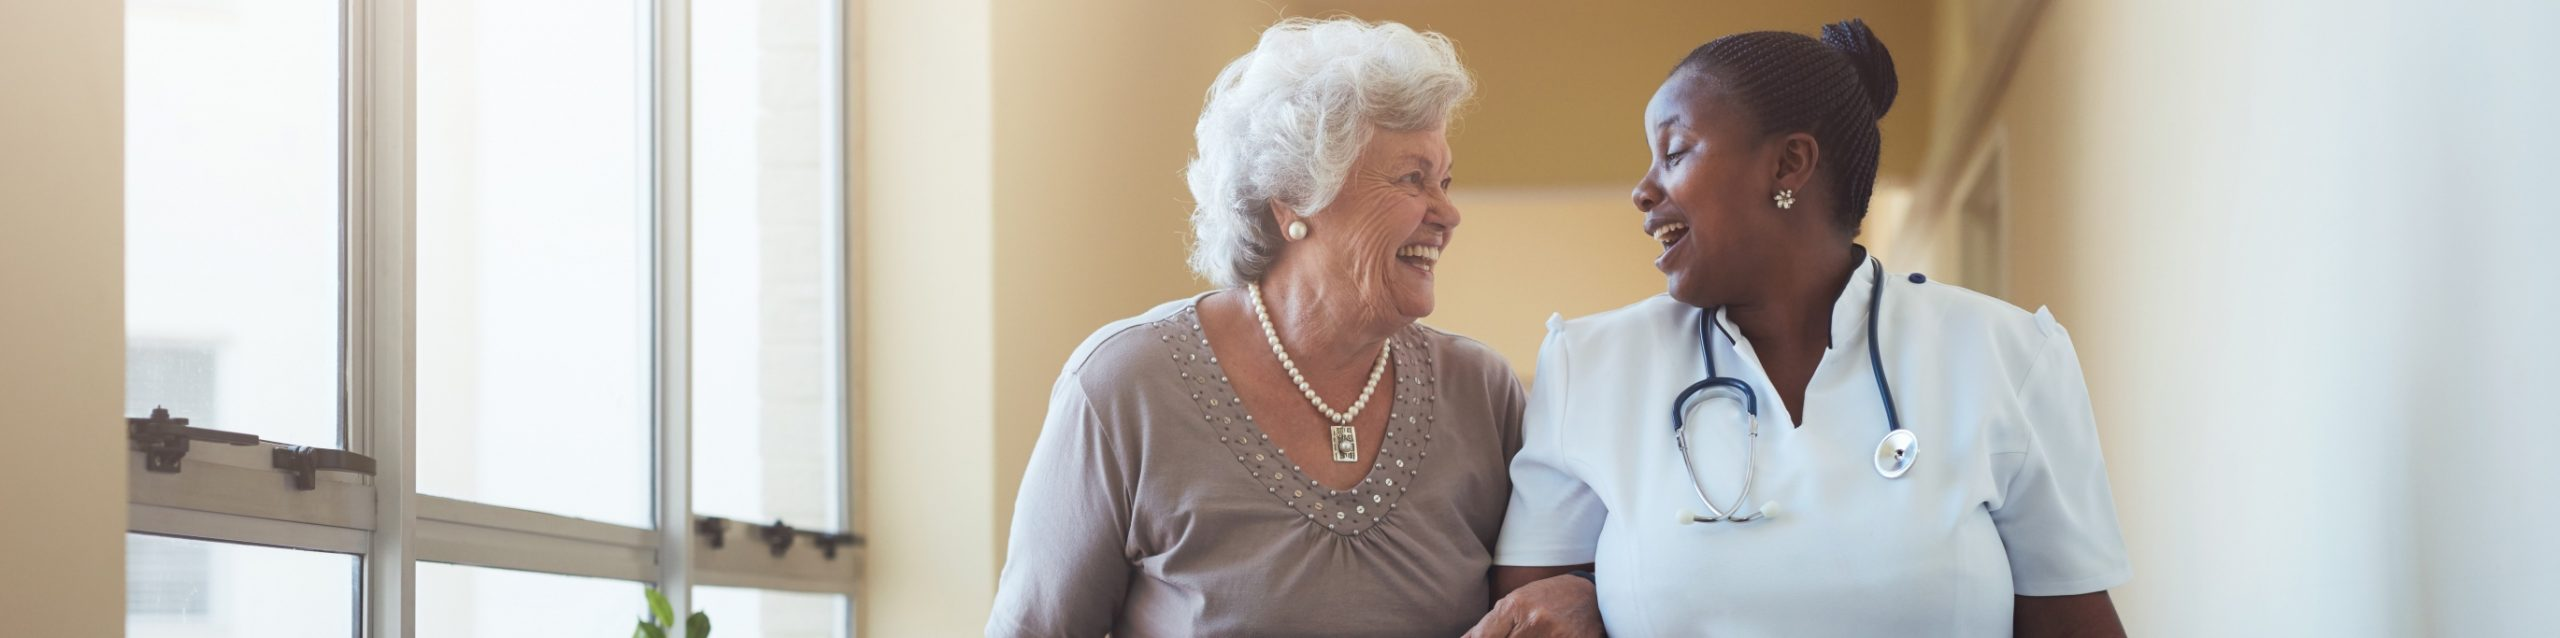 Portrait of smiling healthcare worker walking and talking with senior woman. Happy elder woman gets help from nurse for a walk through nursing home.